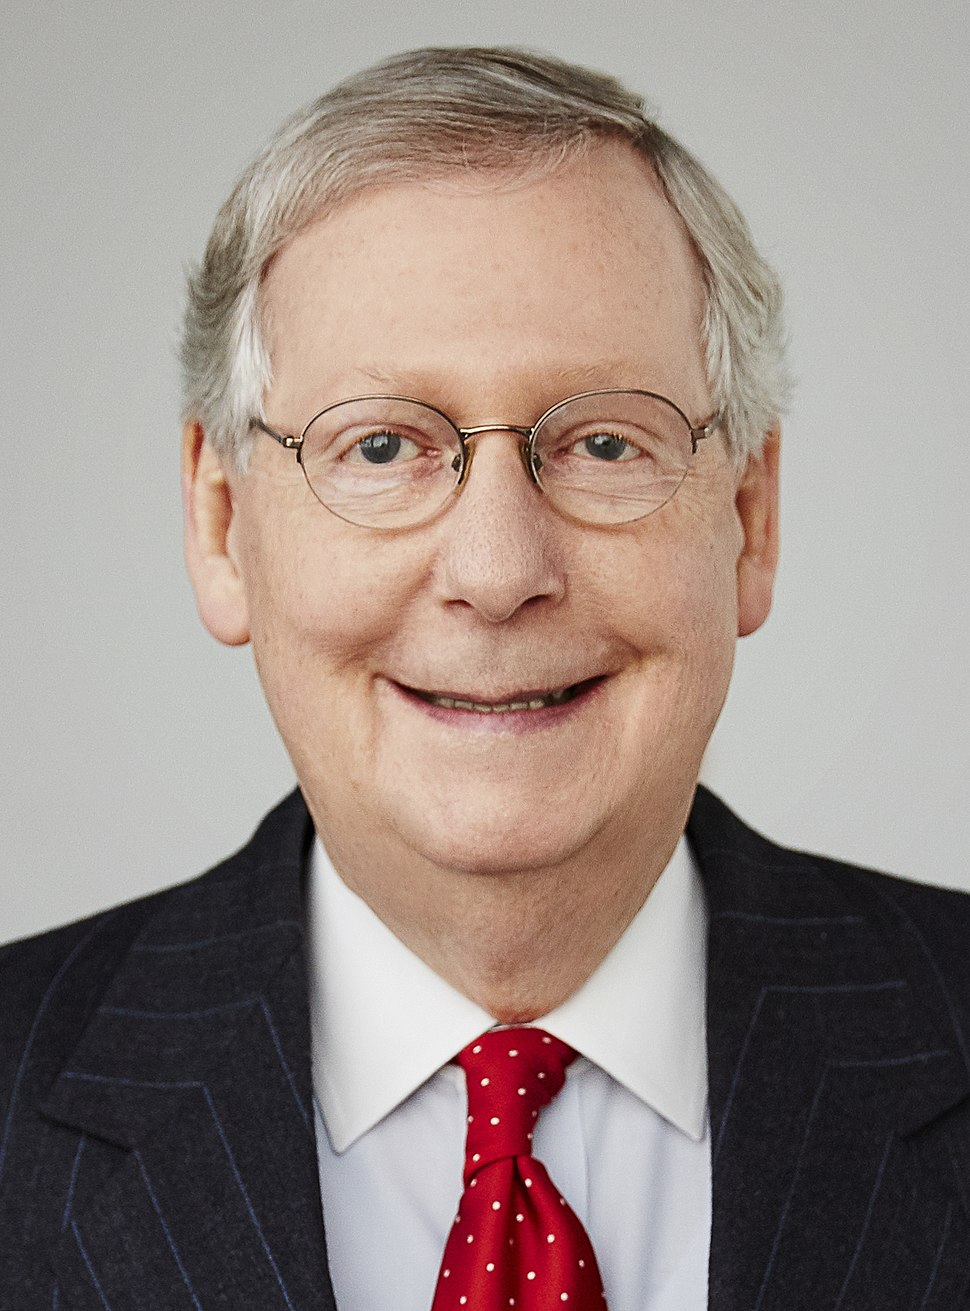 Mitch McConnell 2016 official photo (cropped)